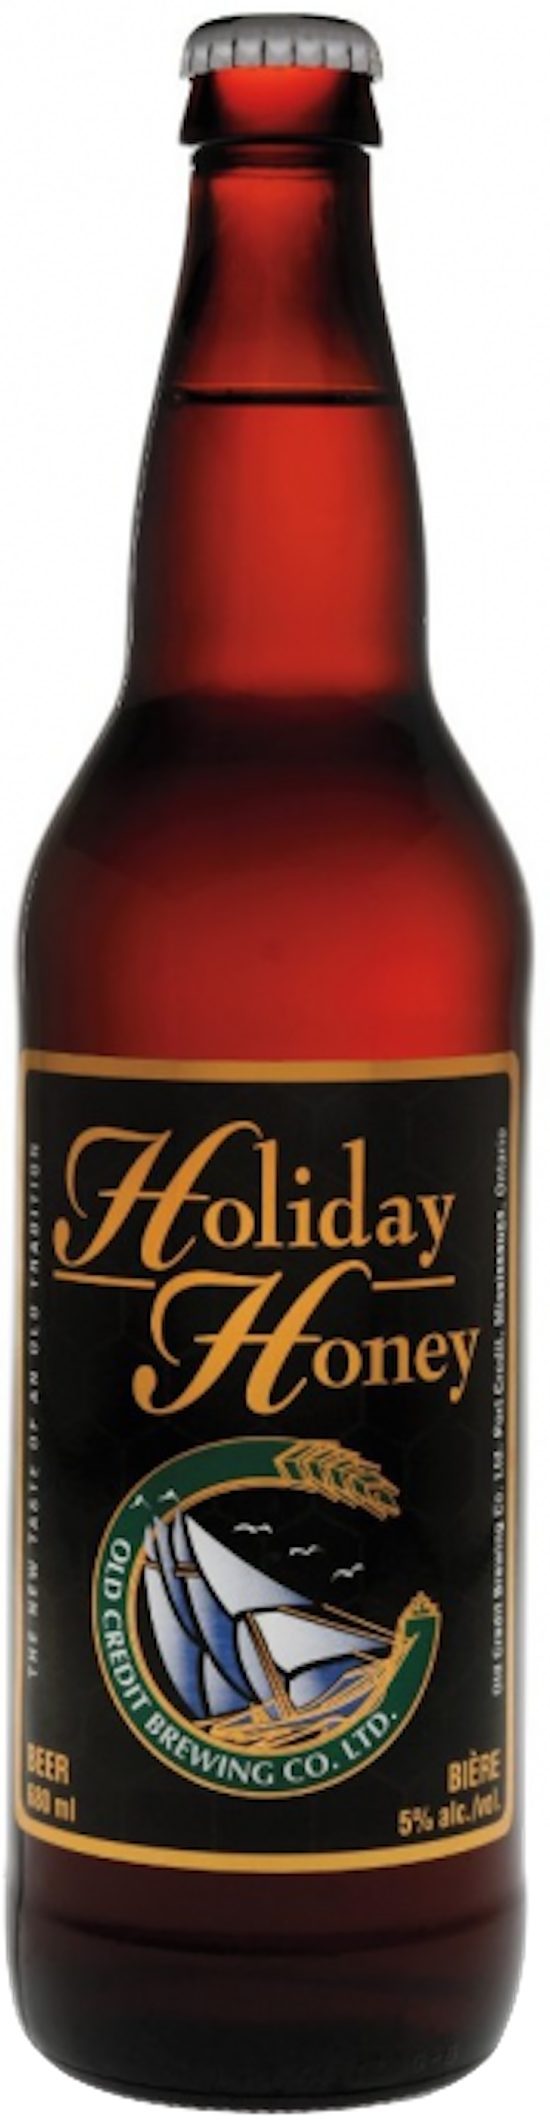 old-credit-brewing-company-holiday-honey_1484777915